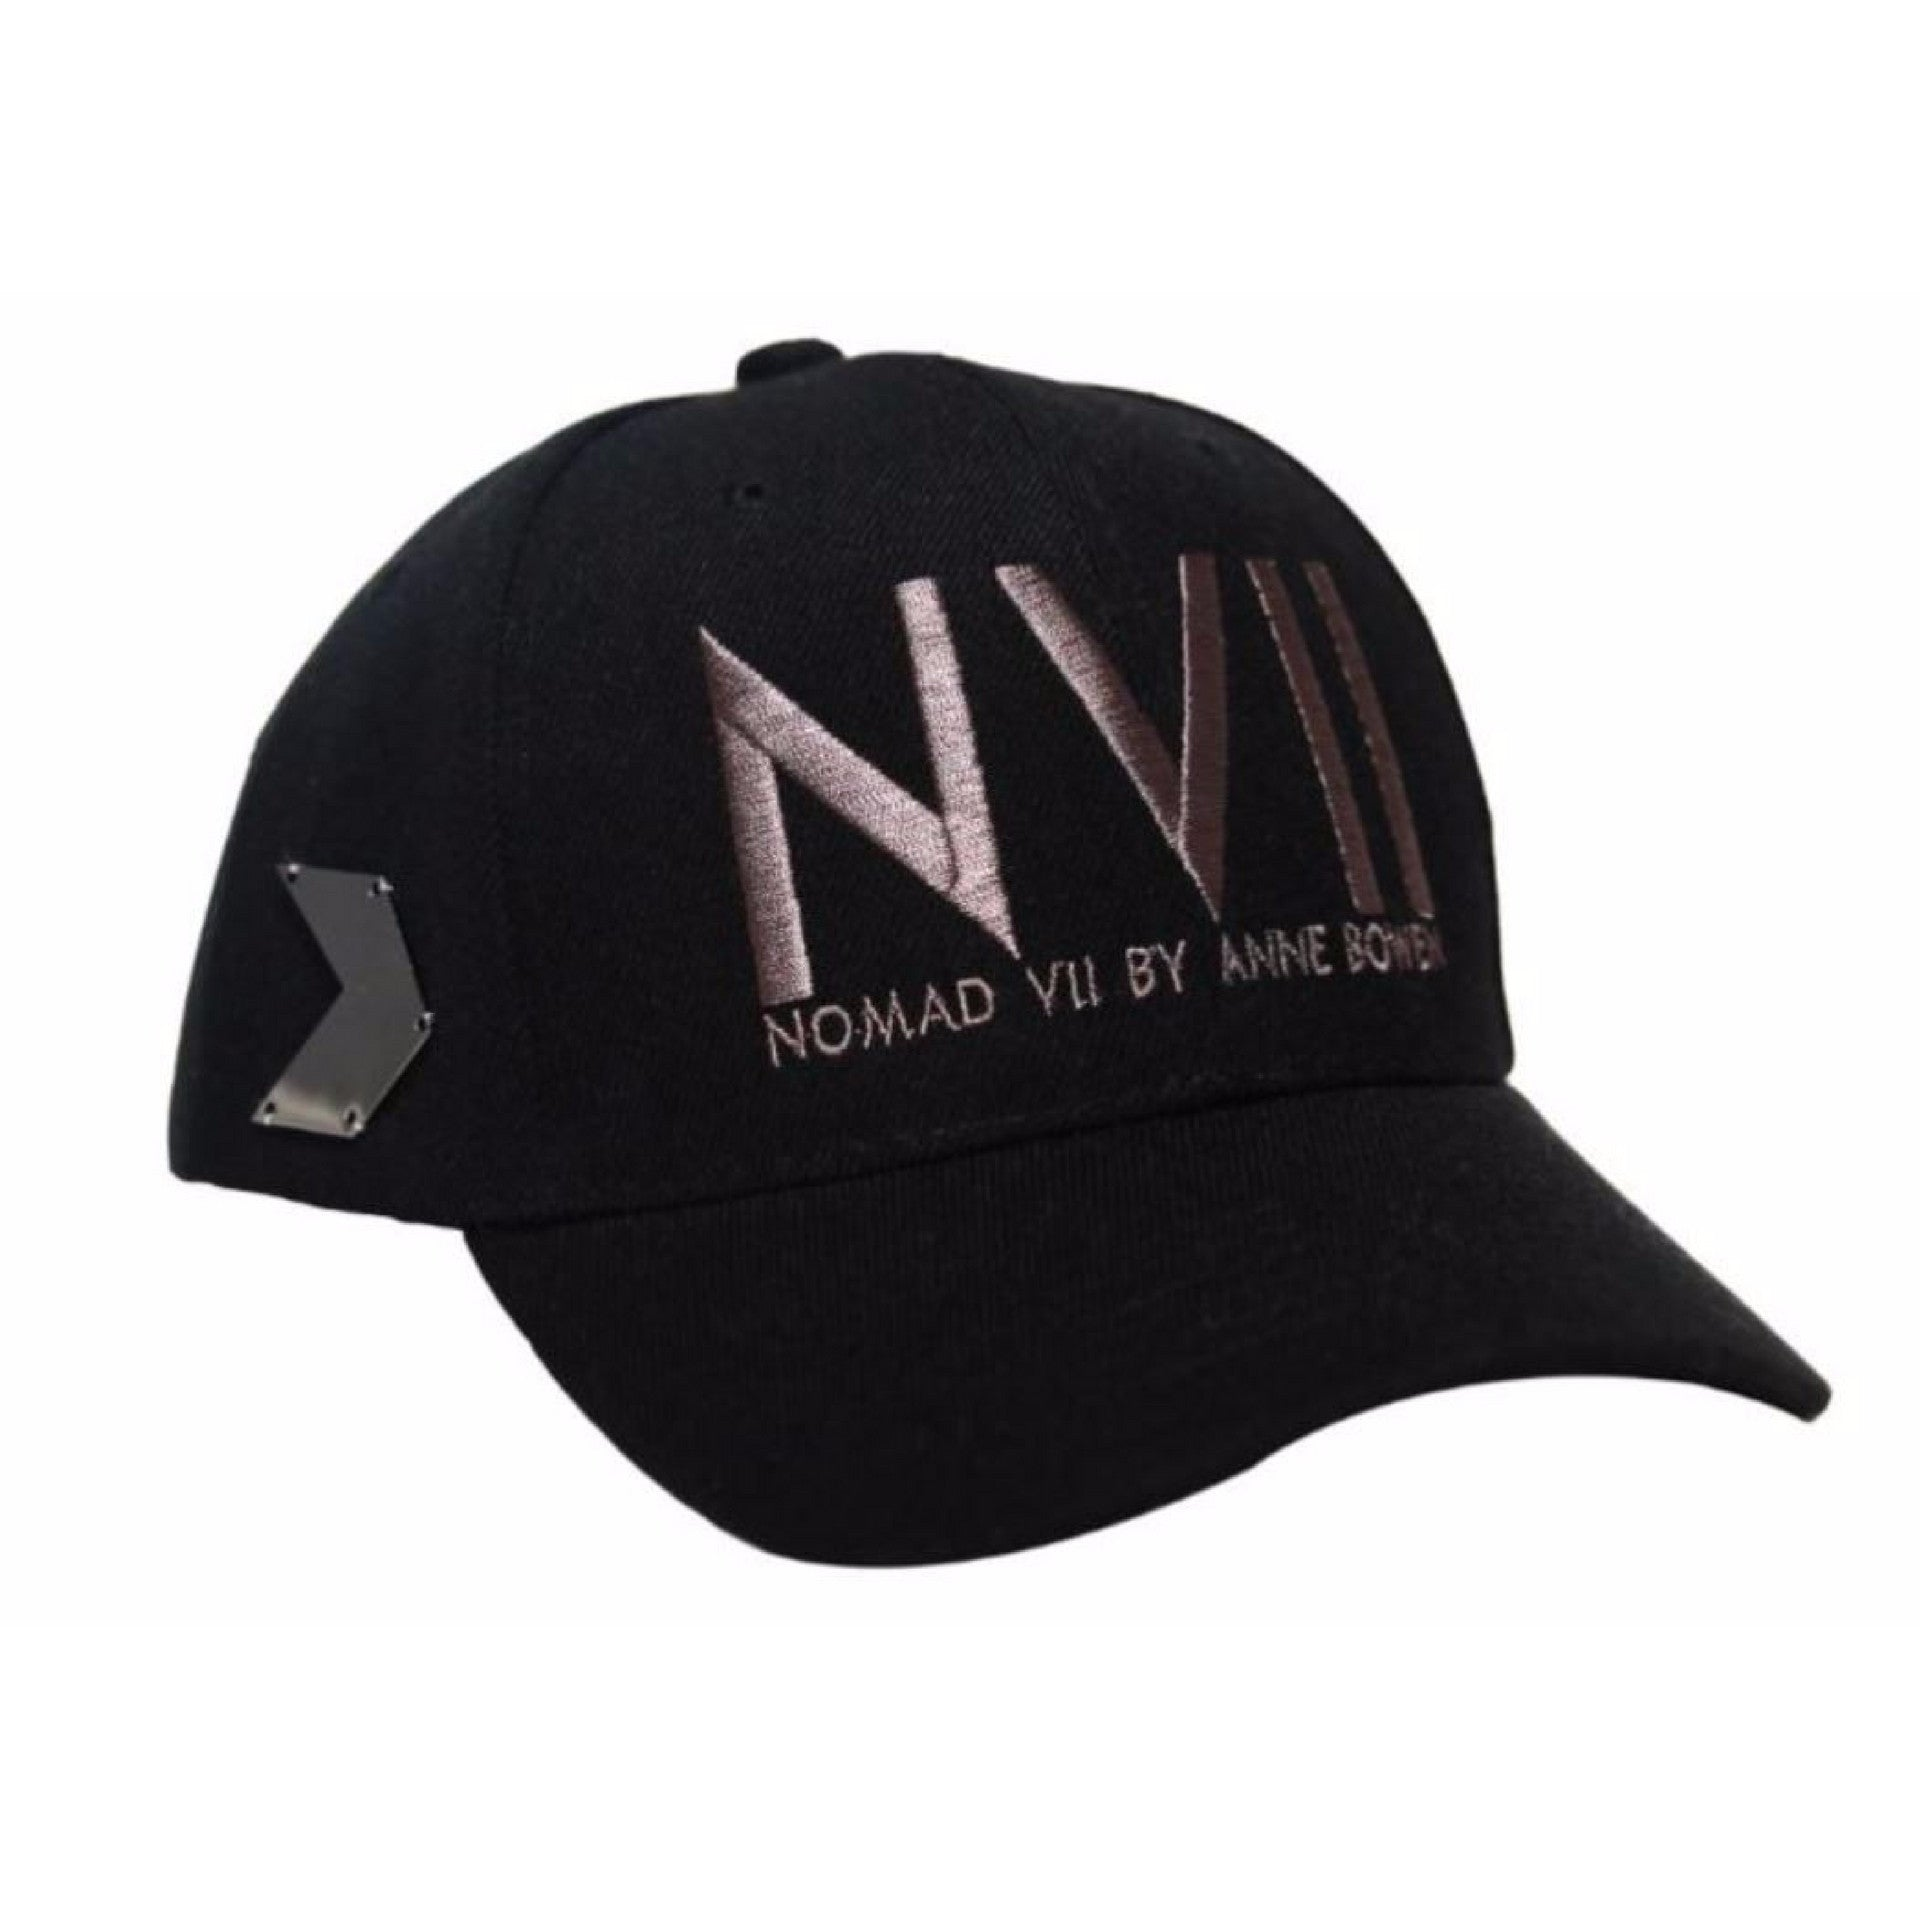 NVII - NEW YORK STYLE BASEBALL HAT (BLACK) - NOMAD VII X ANNE BOWEN